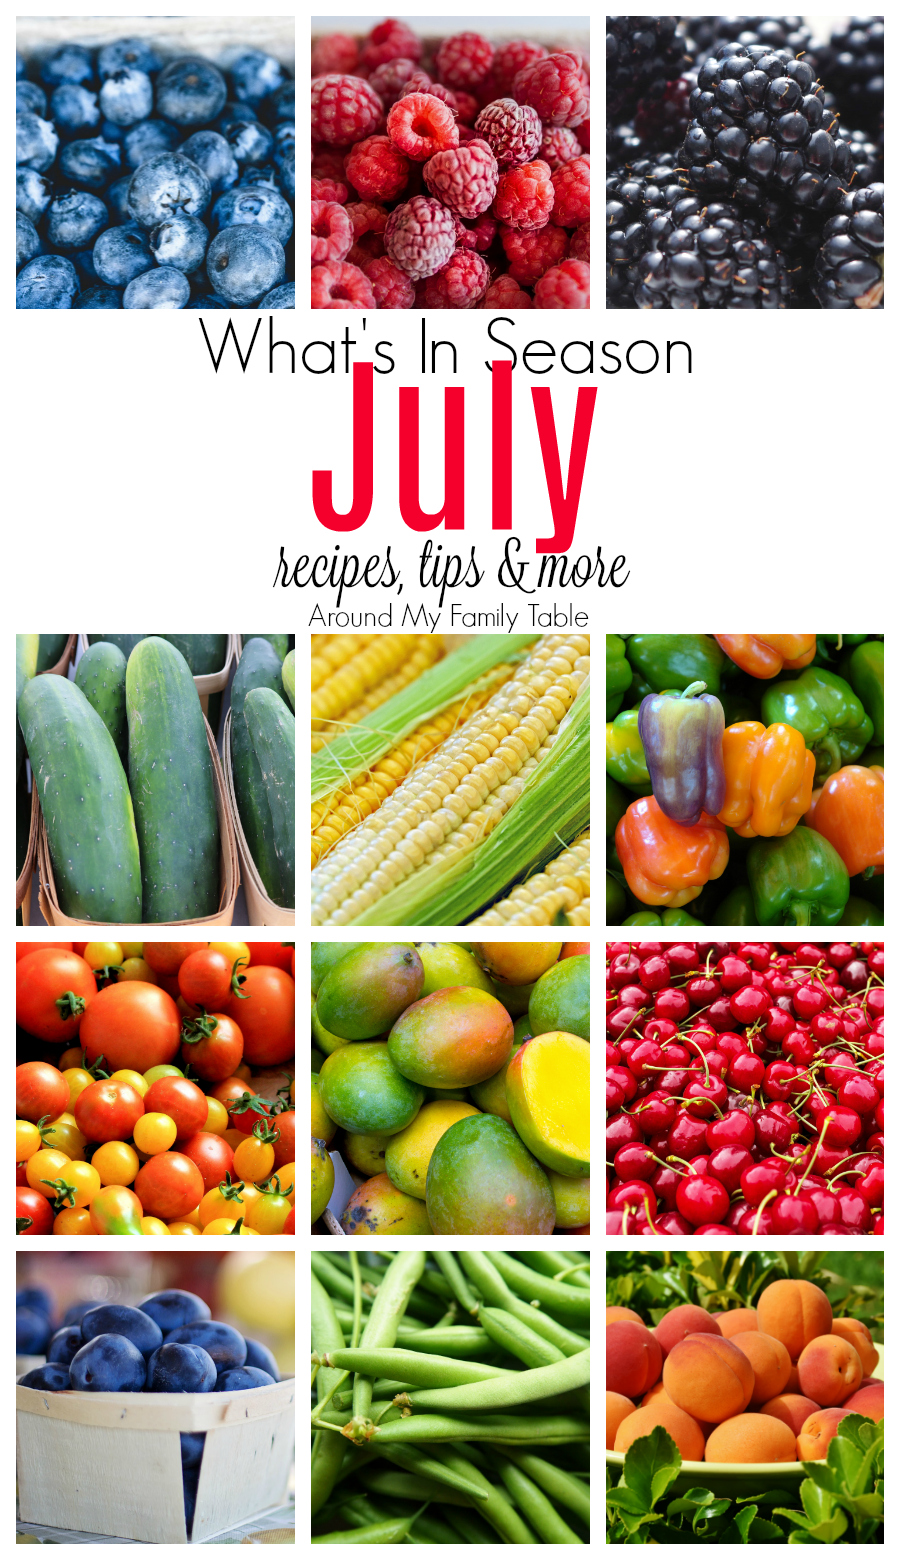 There is so much delicious produce in July and if you are like me, I try to save money at the store by buying produce that's in season. It's cheaper, it's fresher, and it didn't travel very far to get to your table. MyJuly — What's in Season Guideis your guide to July Seasonal Produce along with recipes, tips, and more! #seasonal #eatseasonally #whatsinseason #seasonalrecipes via @slingmama